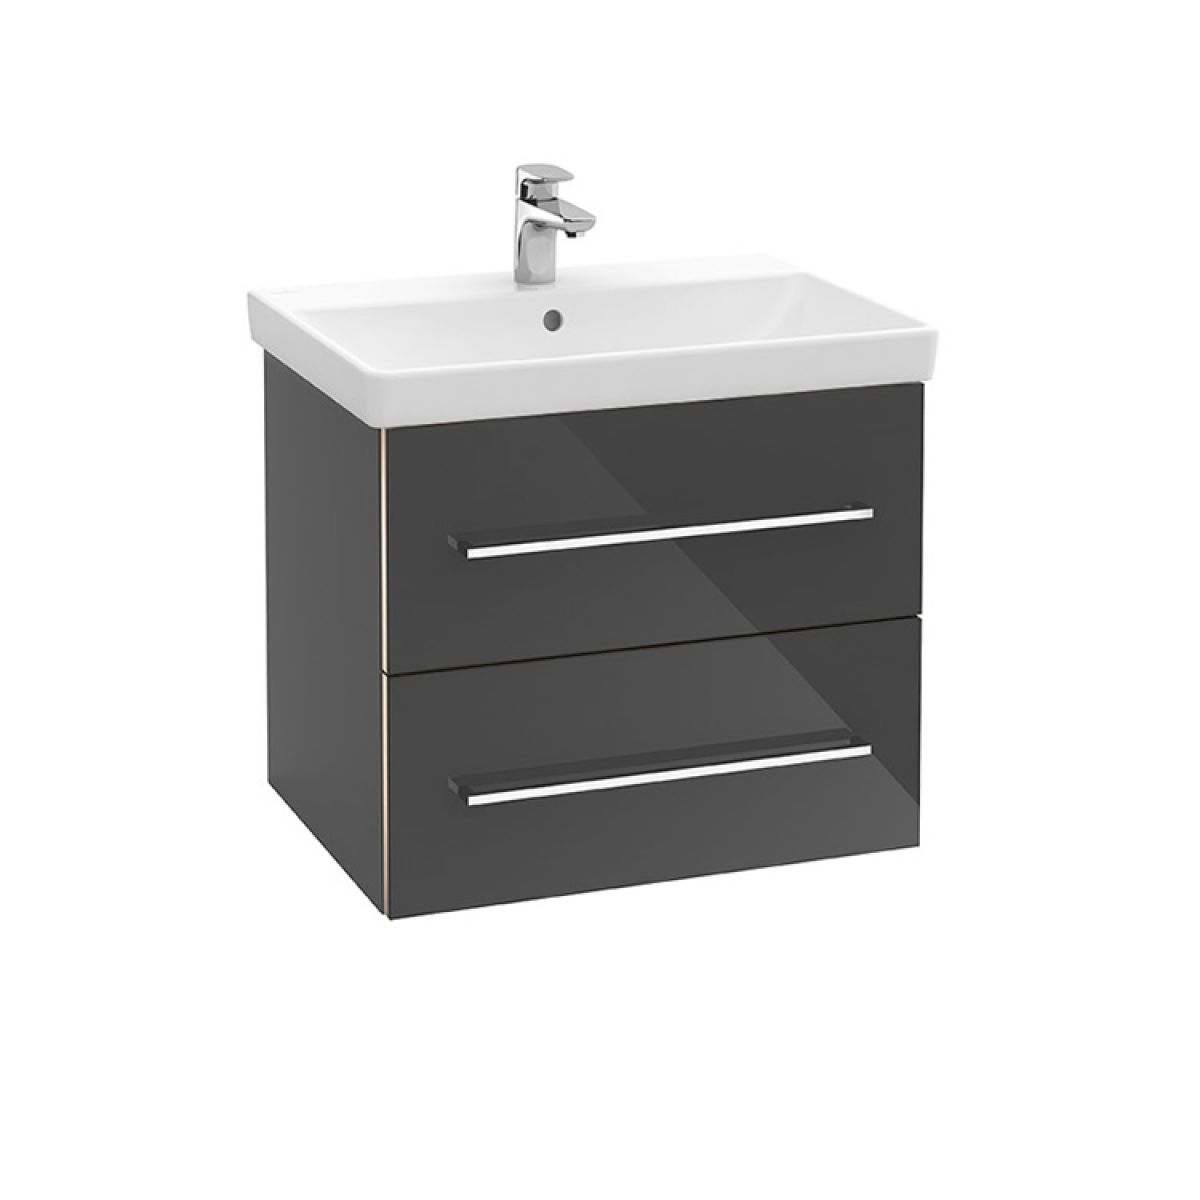 villeroy and boch avento two drawer vanity washbasin unit uk bathrooms. Black Bedroom Furniture Sets. Home Design Ideas